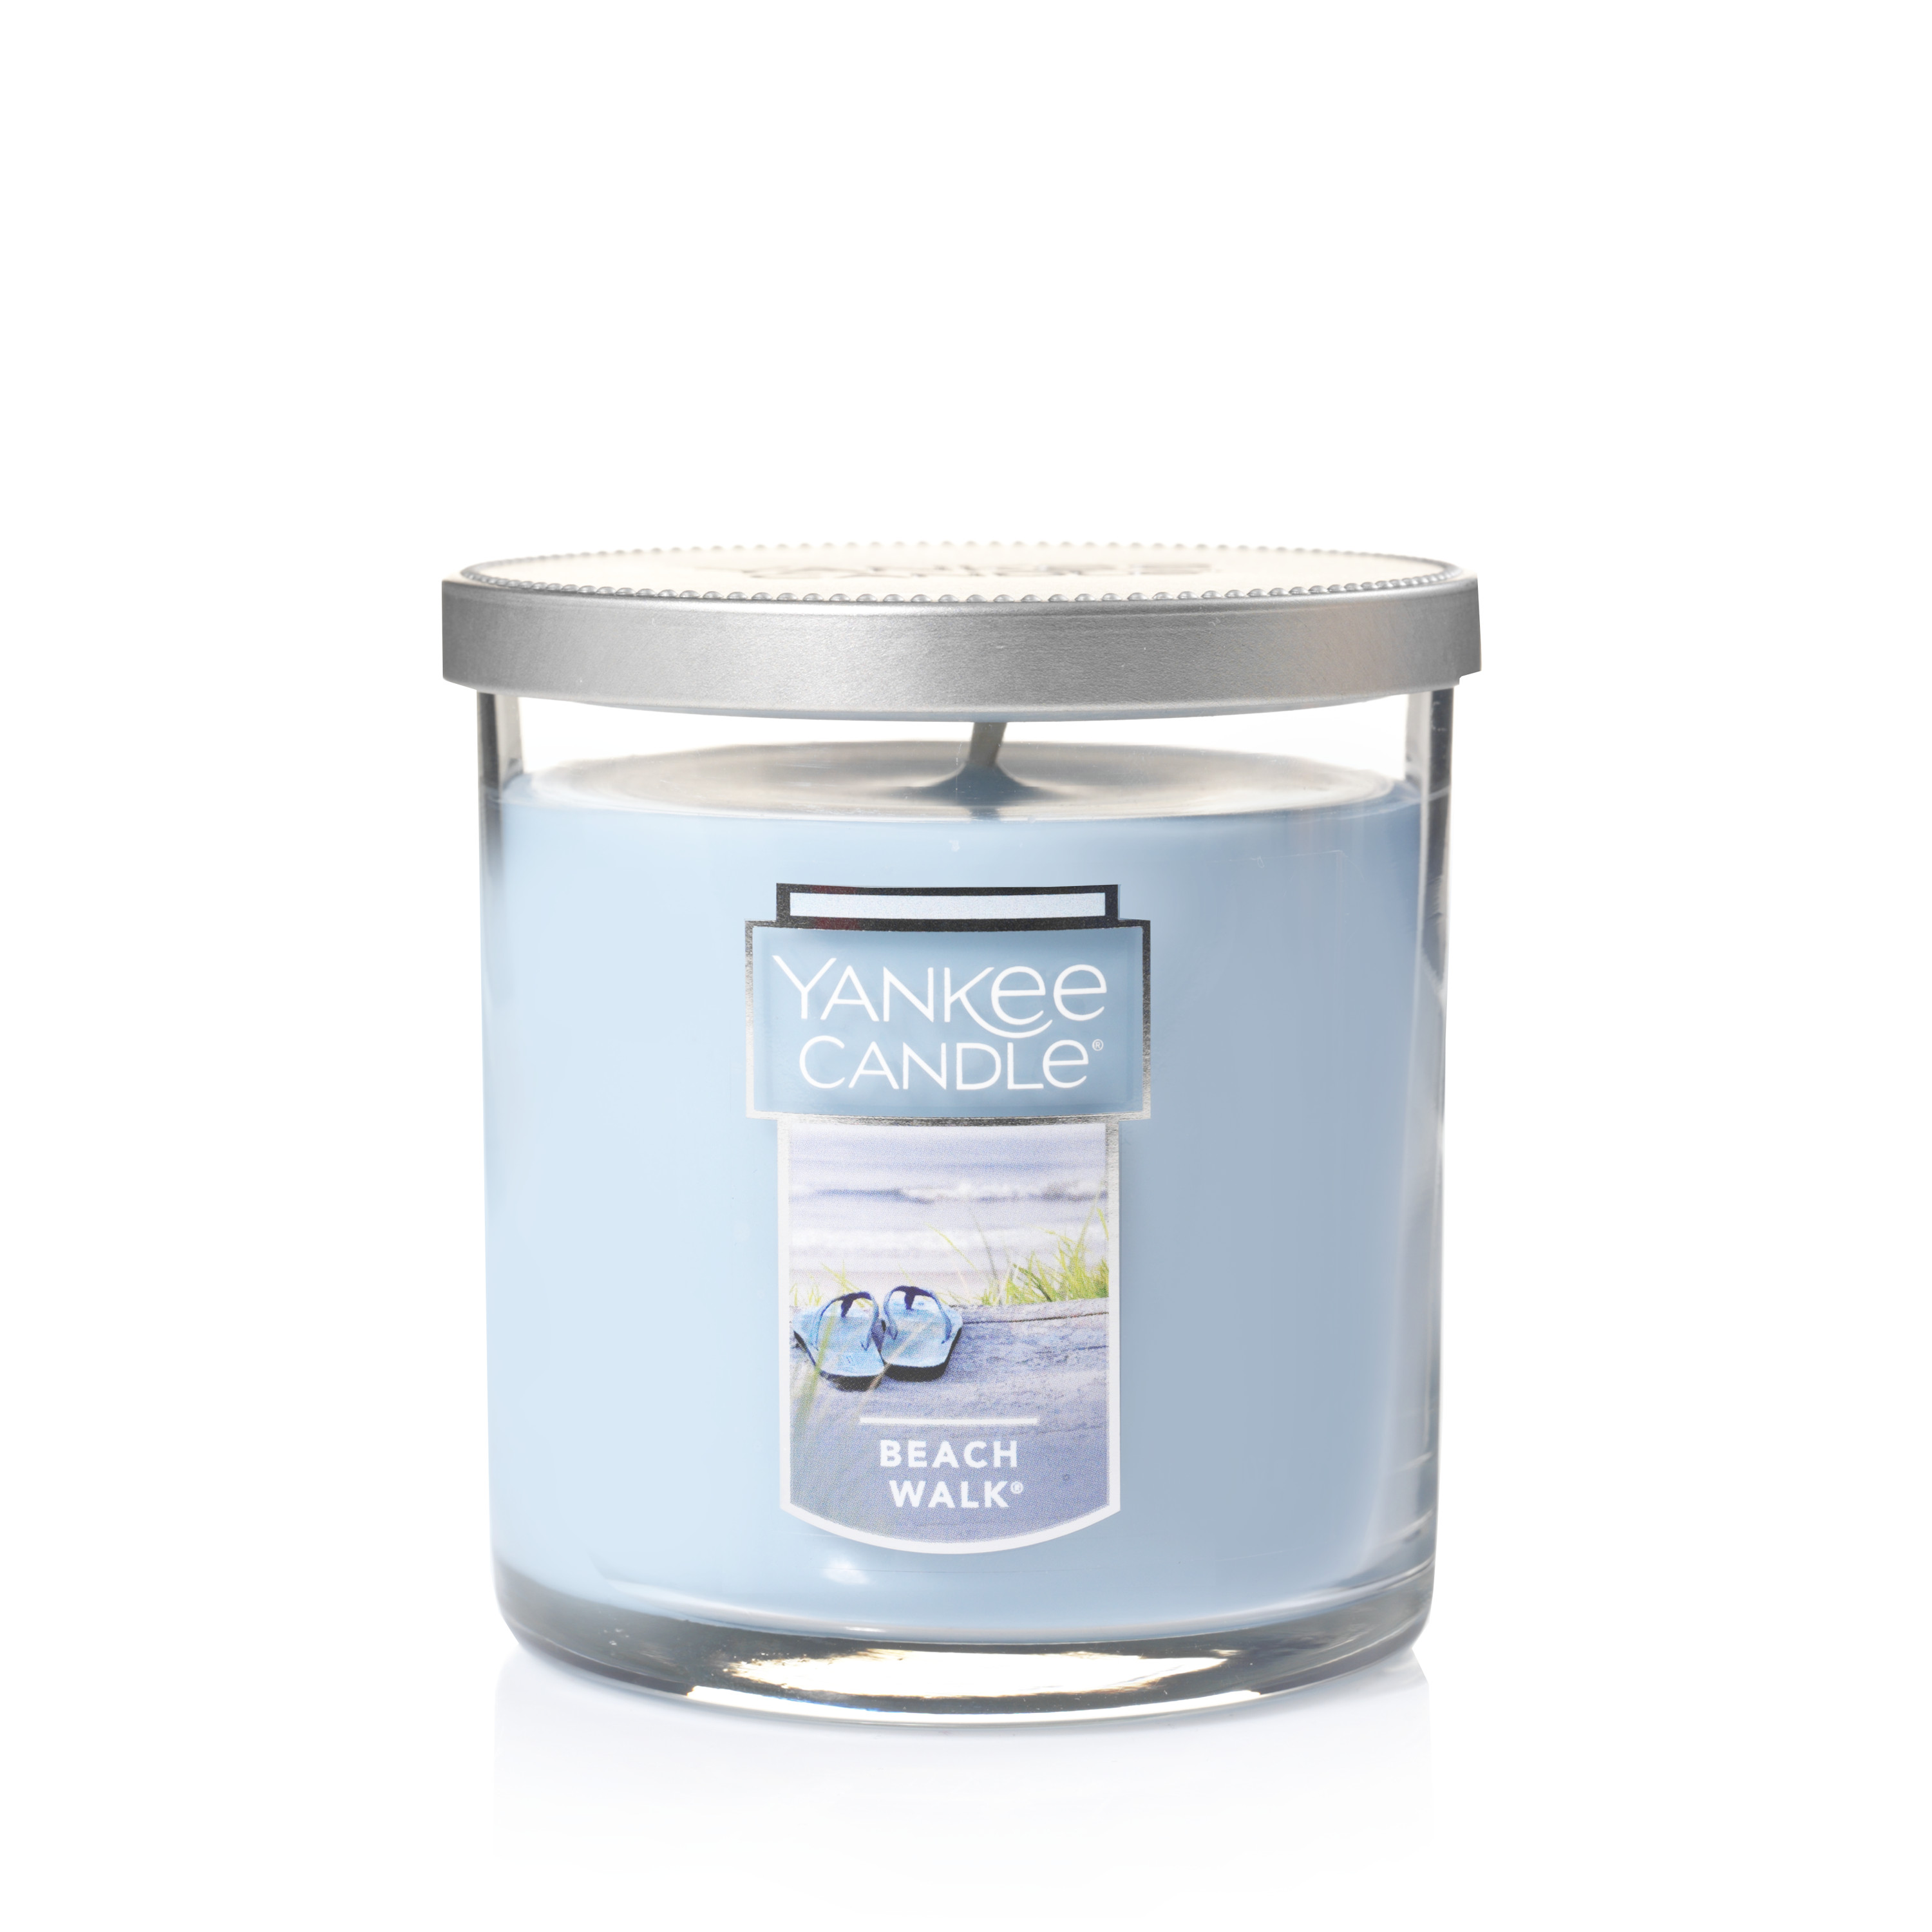 Yankee Candle Large 2-Wick Tumbler Candle, Beach Walk by Newell Brands